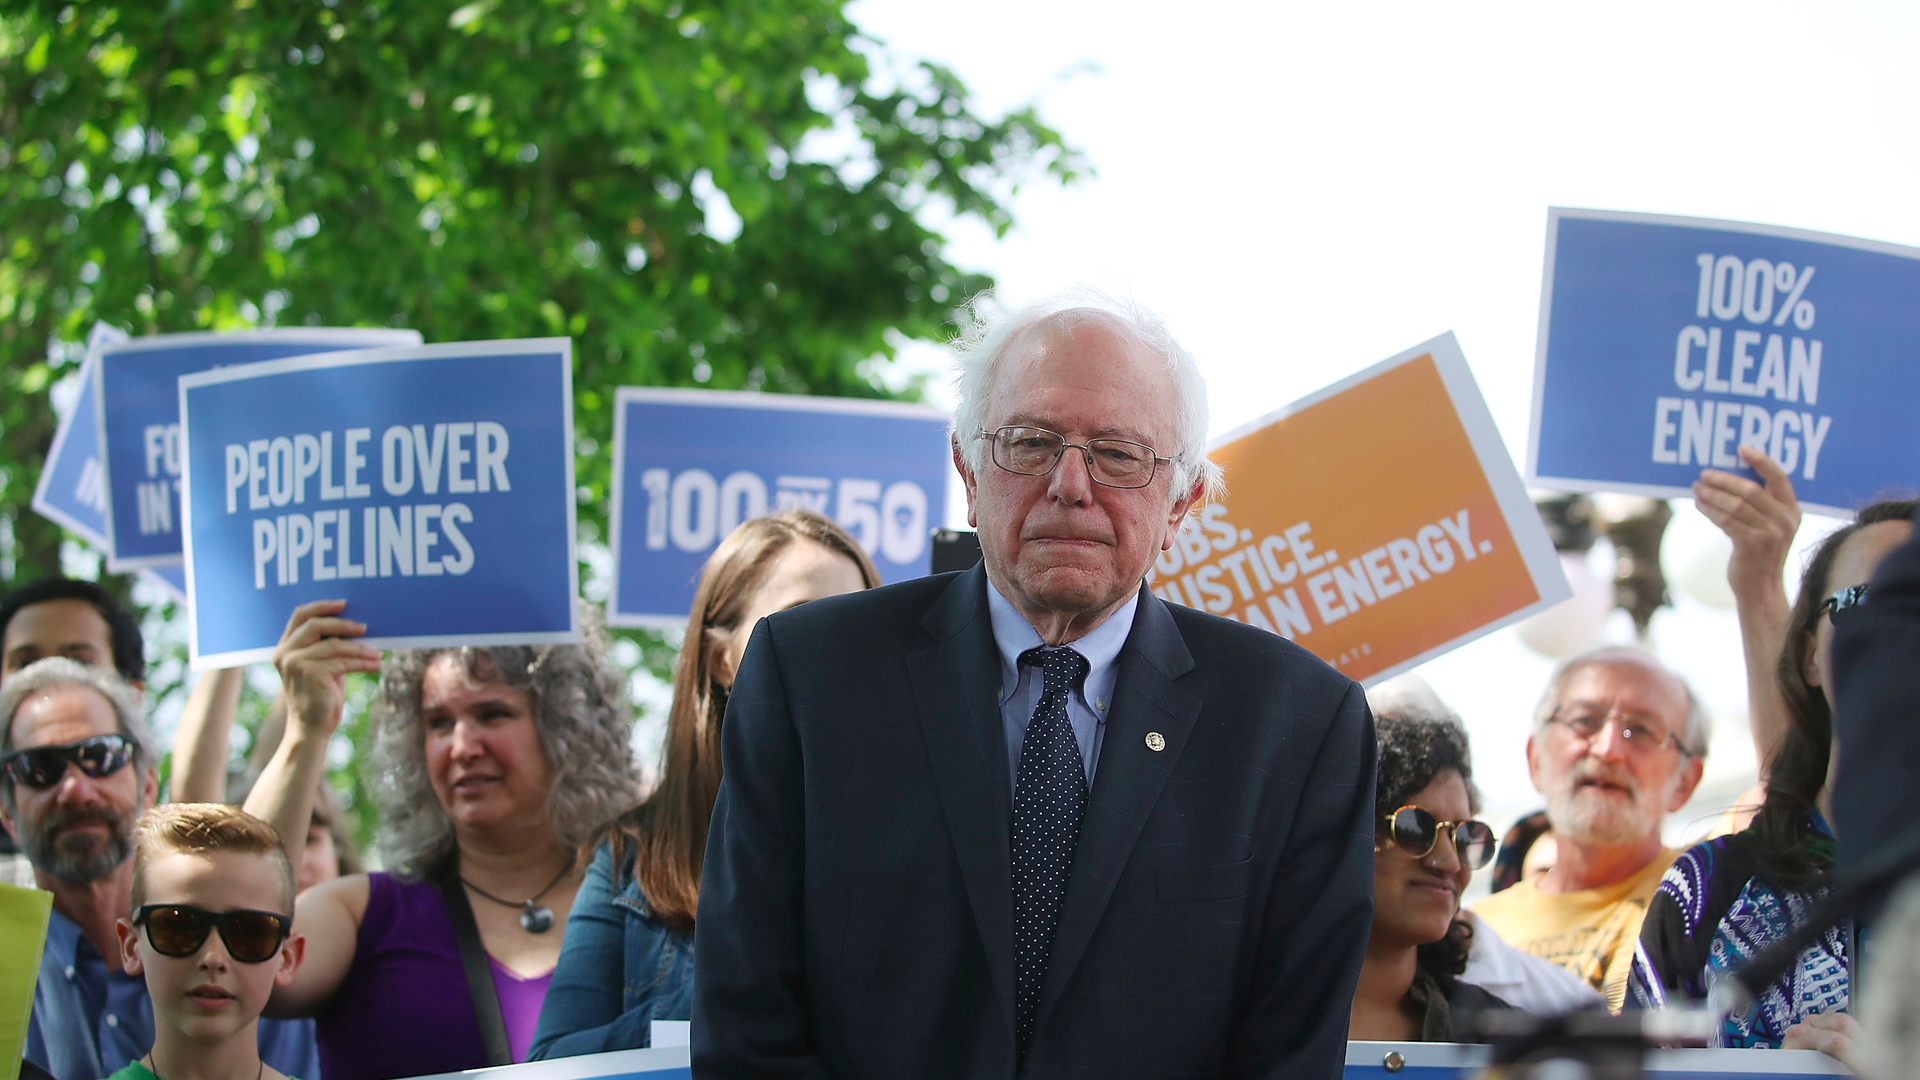 Photo of Bernie Sanders with supporters in background